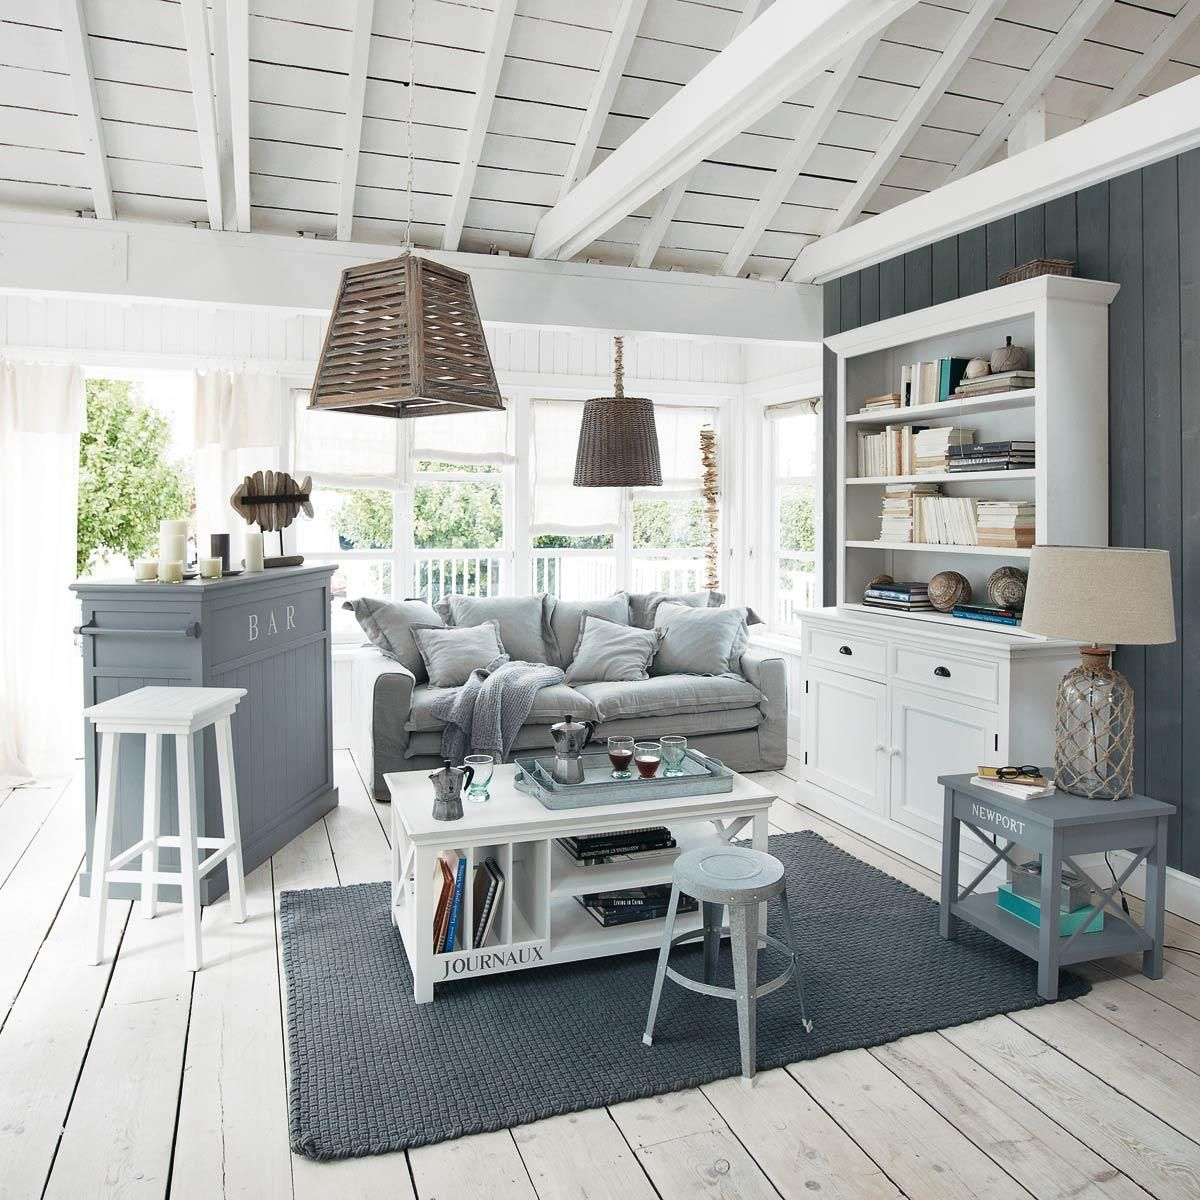 Wintergarten Landhausstil Bücherregal Aus Holz B 130 Cm Weiß In 2019 Shoppen